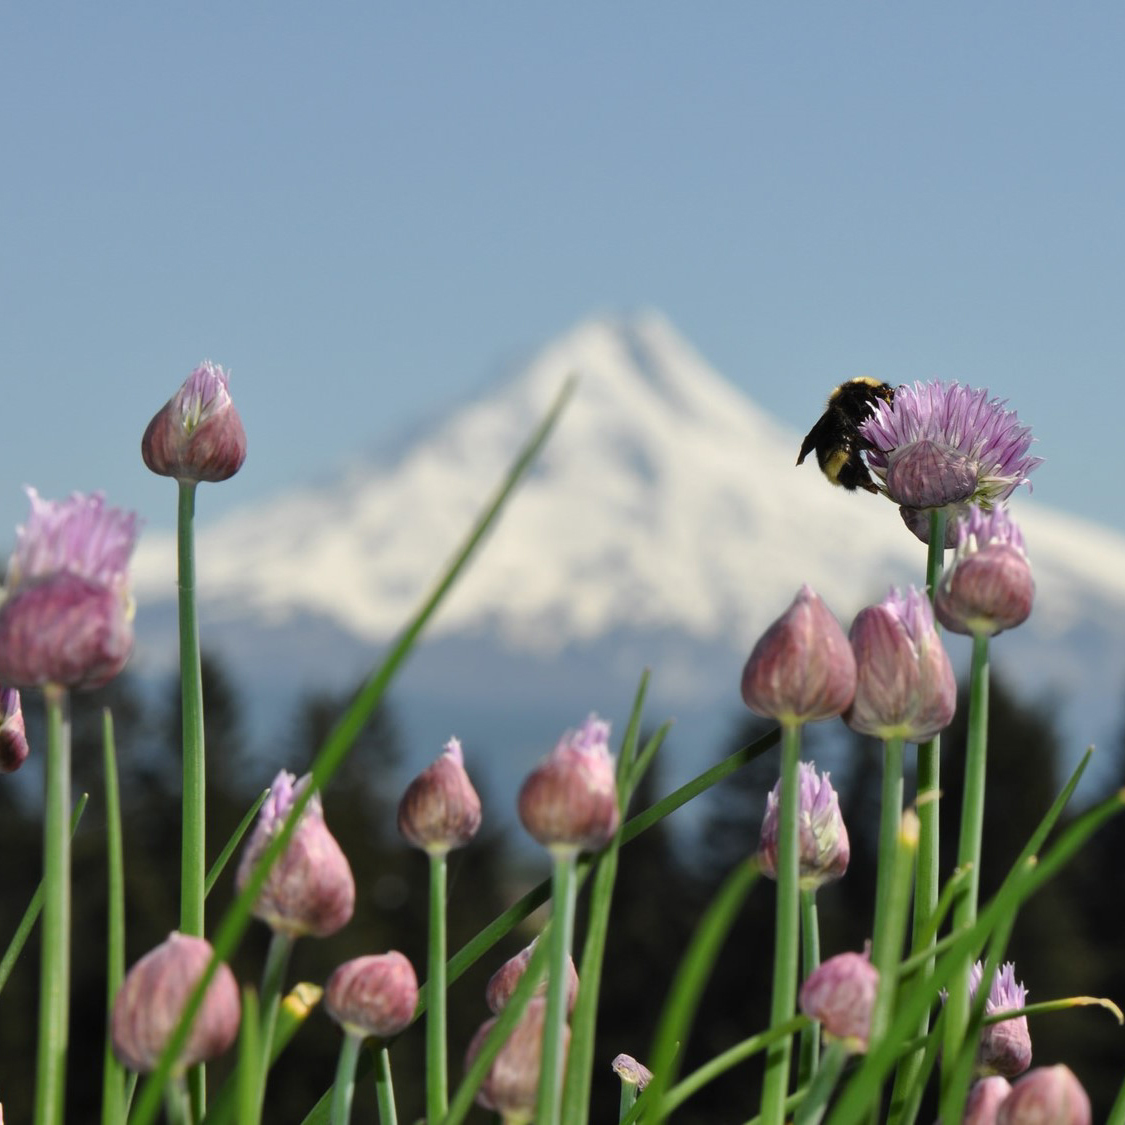 A bumble bee collects pollen from a pink, round bloom in the foreground; the snow-covered peak of Oregon's Mt. Hood looms in the background.